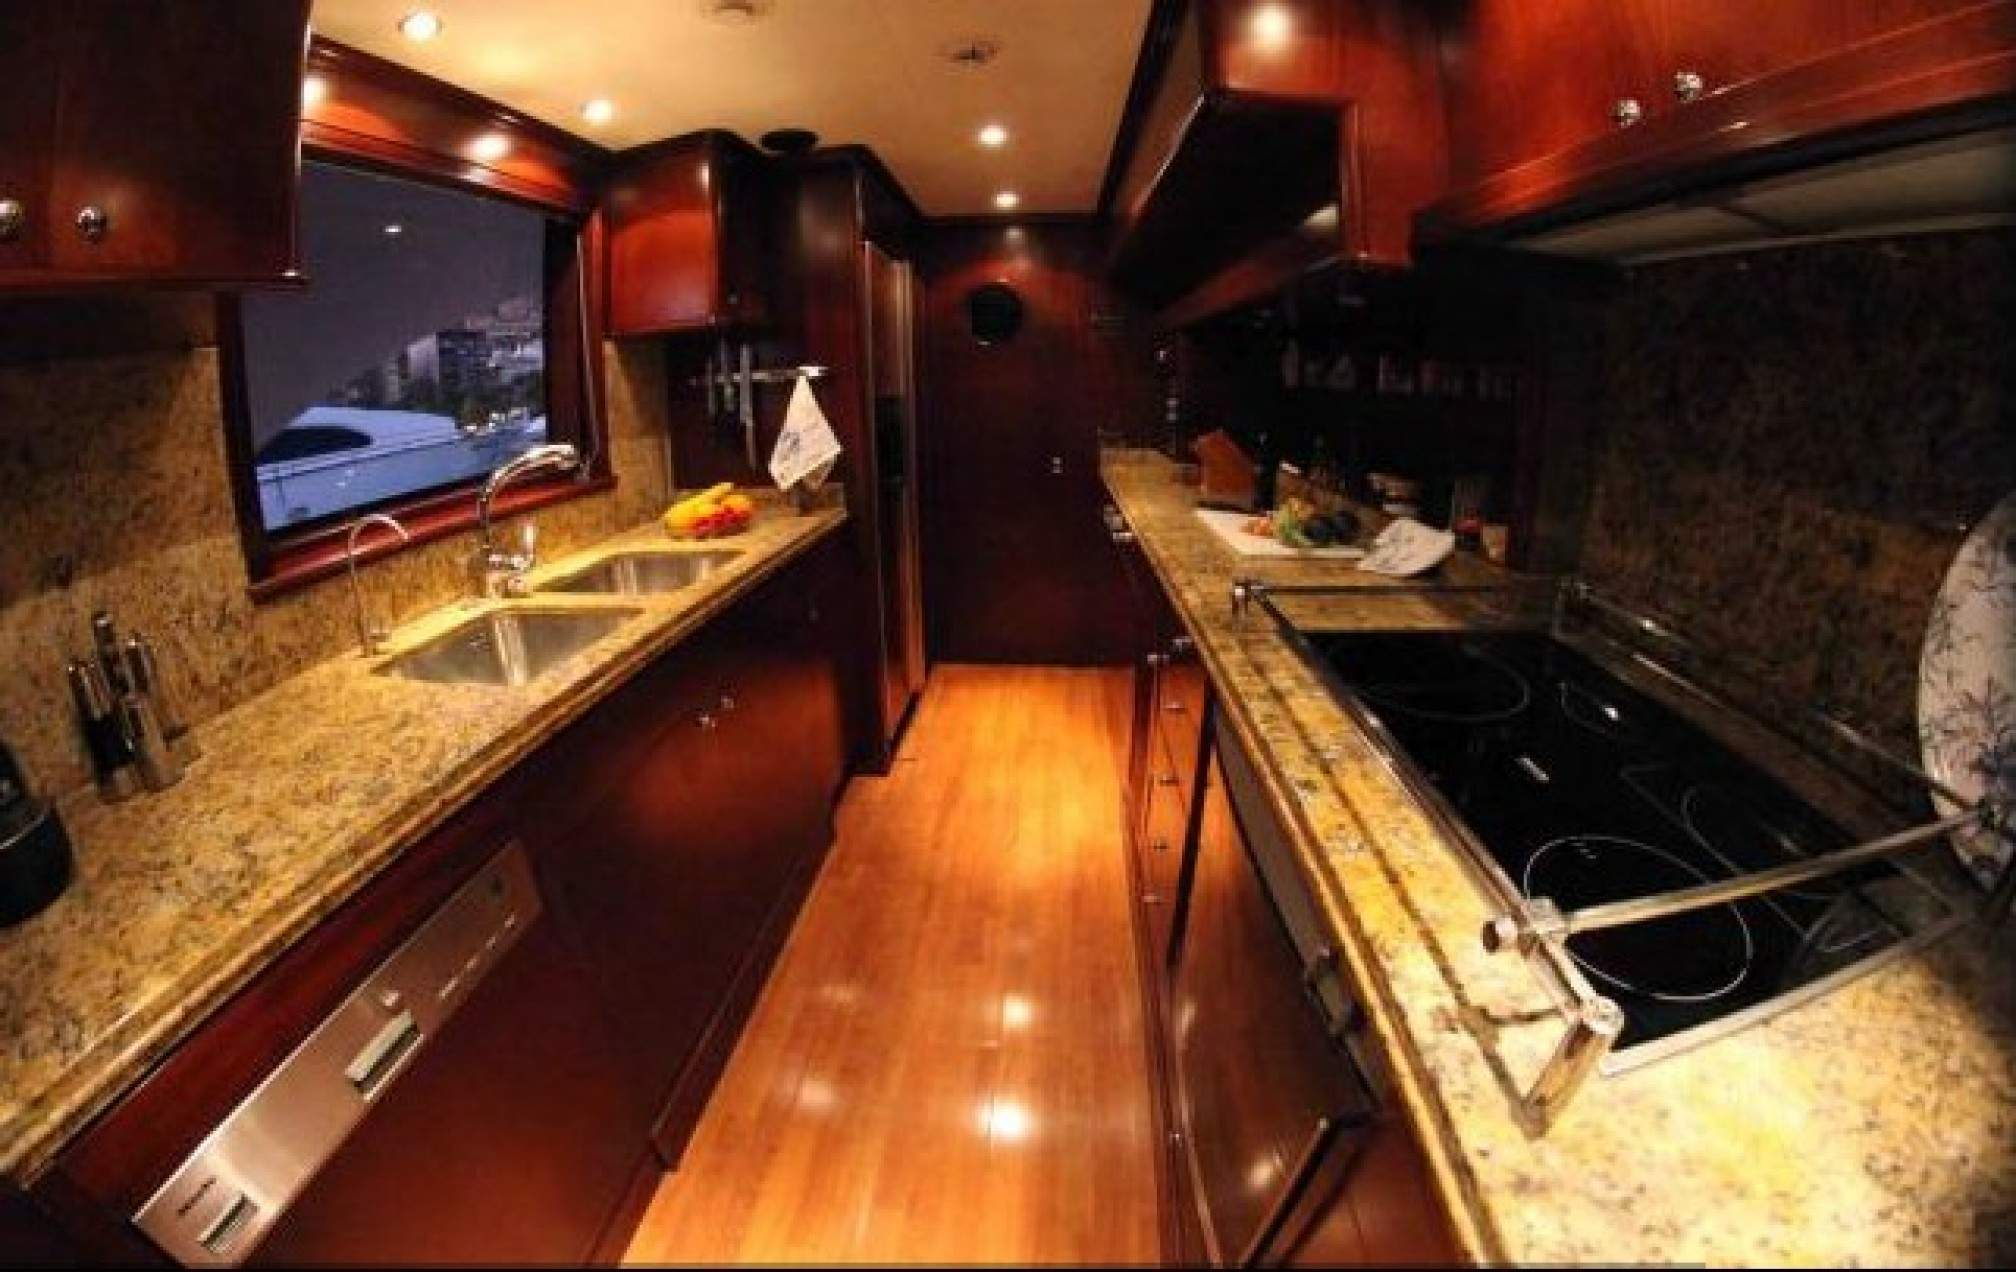 Anypa de luxe yacht kitchen